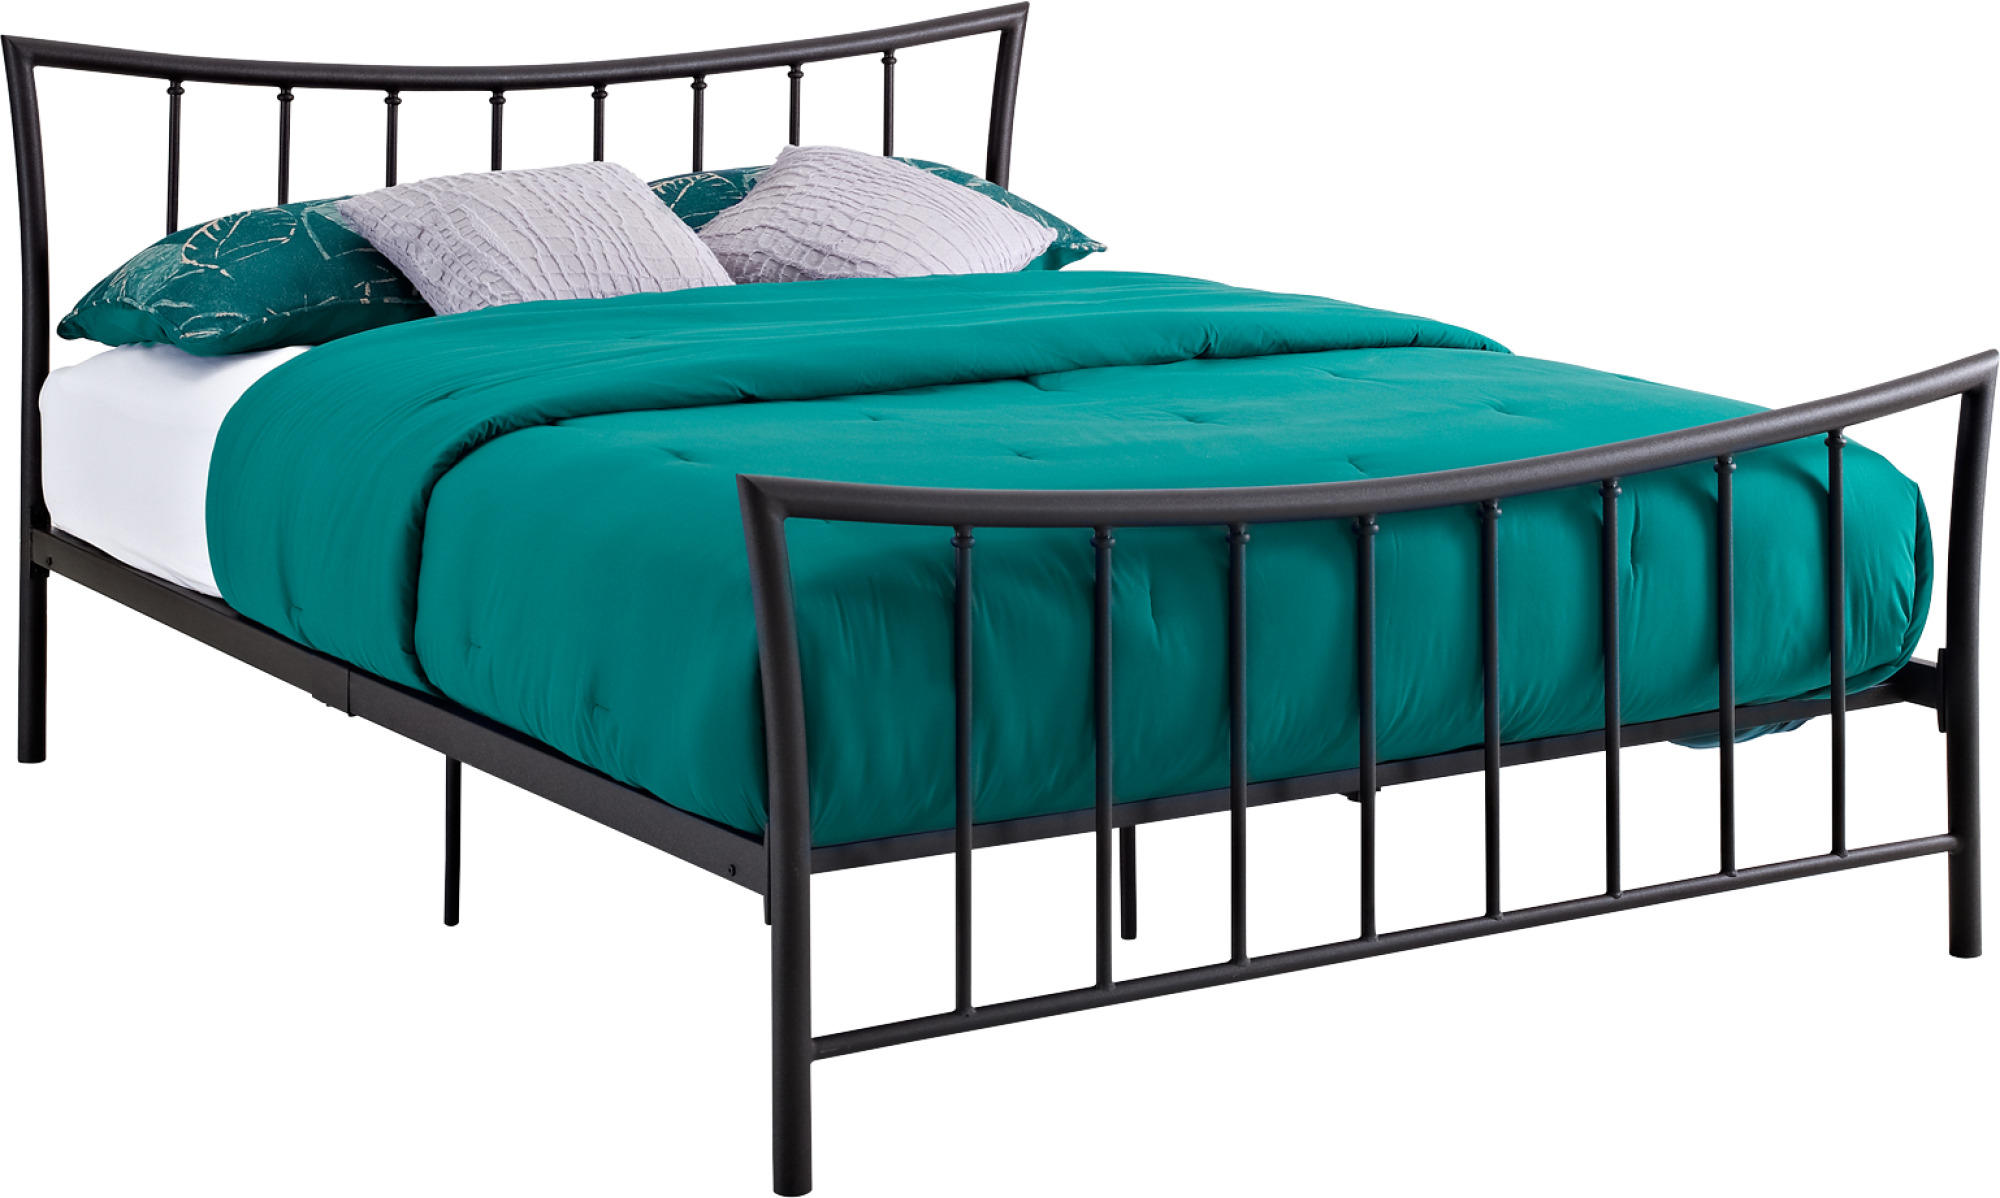 collection of bed. Furniture clipart steel furniture